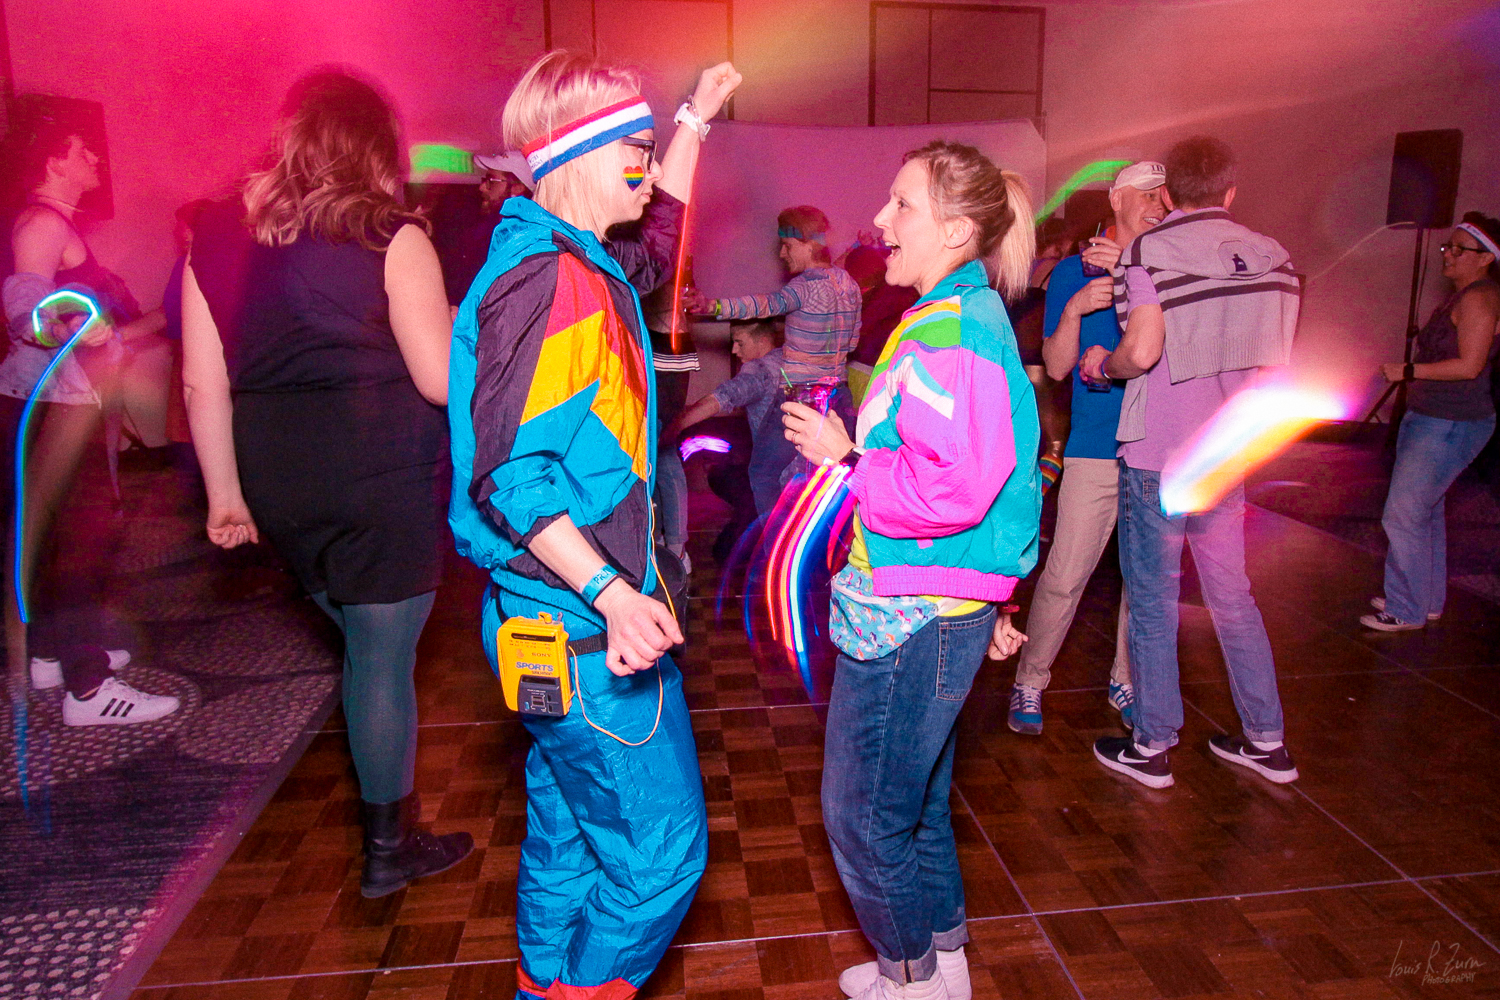 FM Winter Pride Totally Gay 80's Dance Party